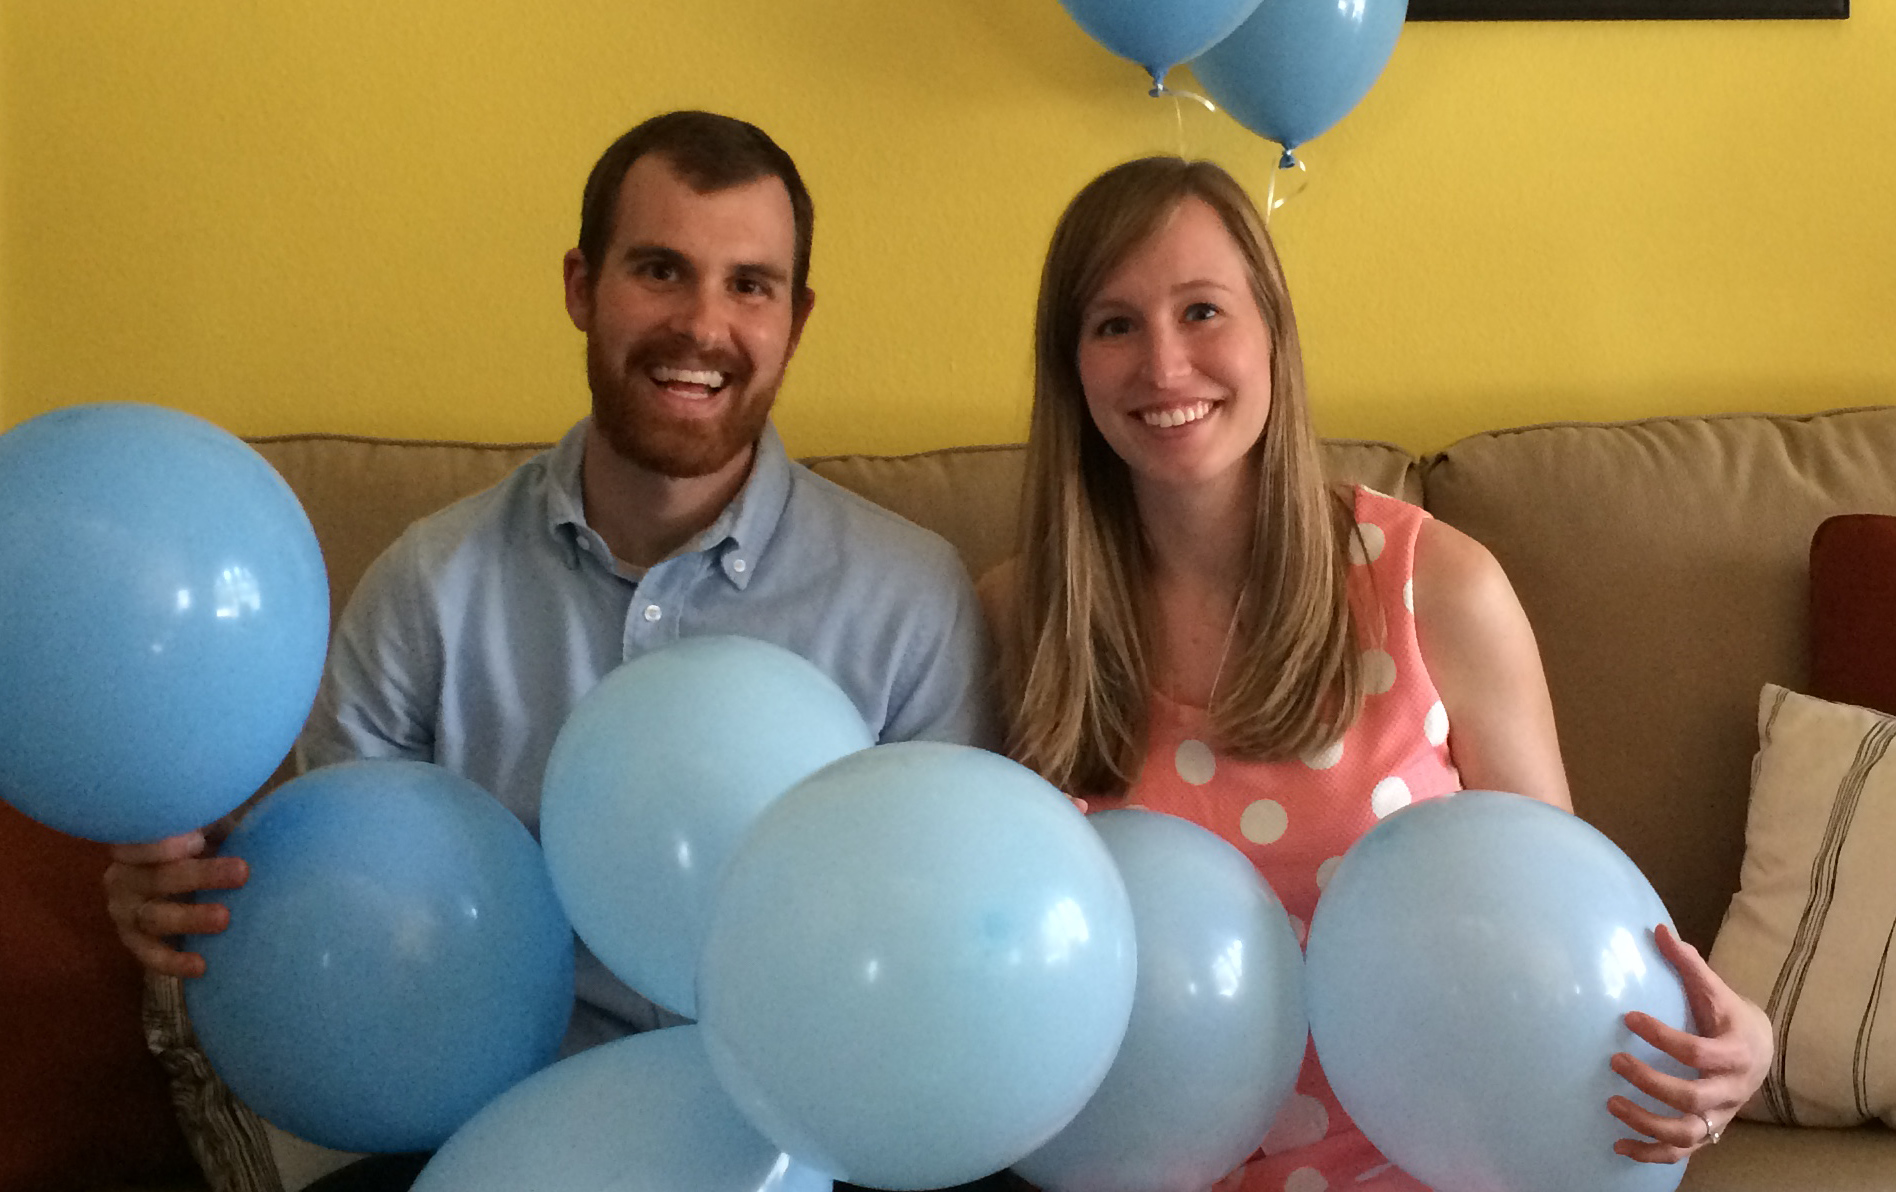 Gender-Reveal-Couch-Pic-Crop